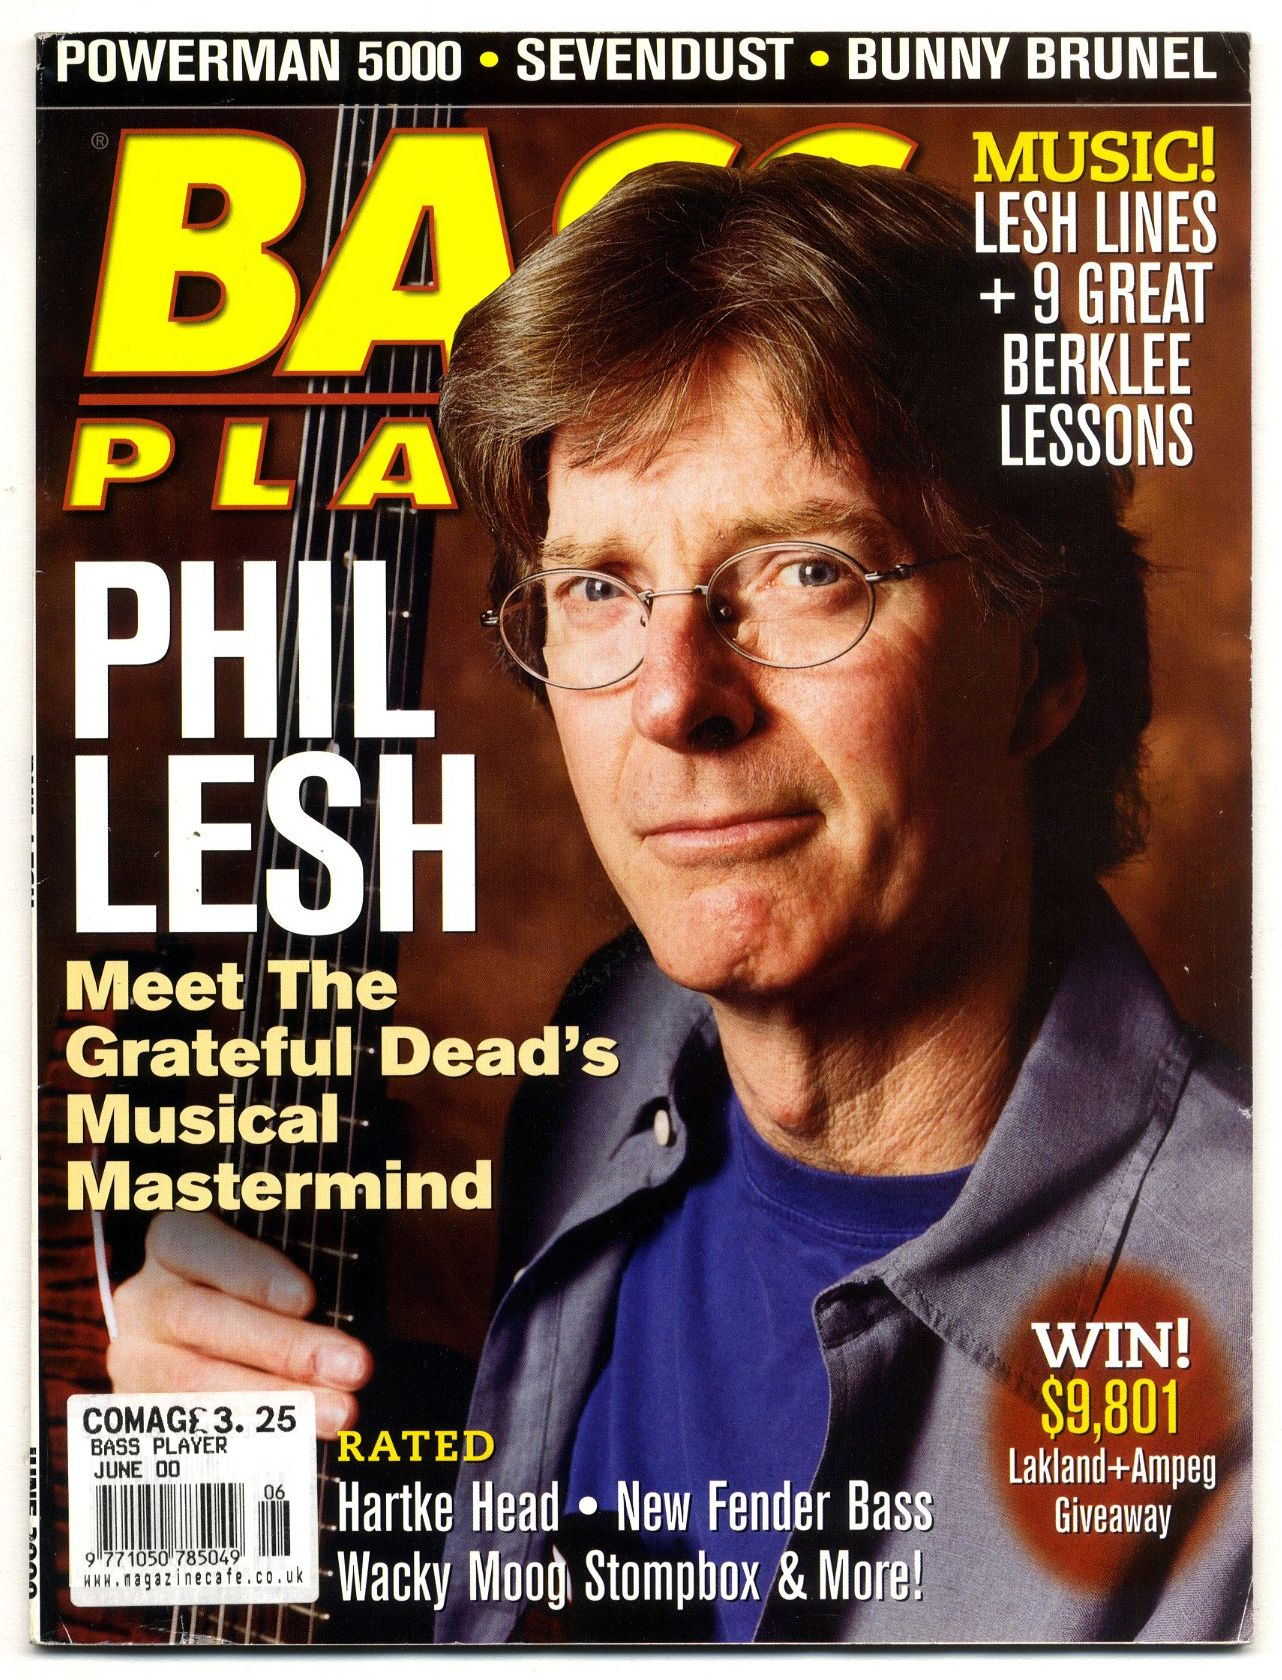 Bass Player Magazine June 2000 Bunny Brunel Sevendust Phil Lesh Moog Stompbox